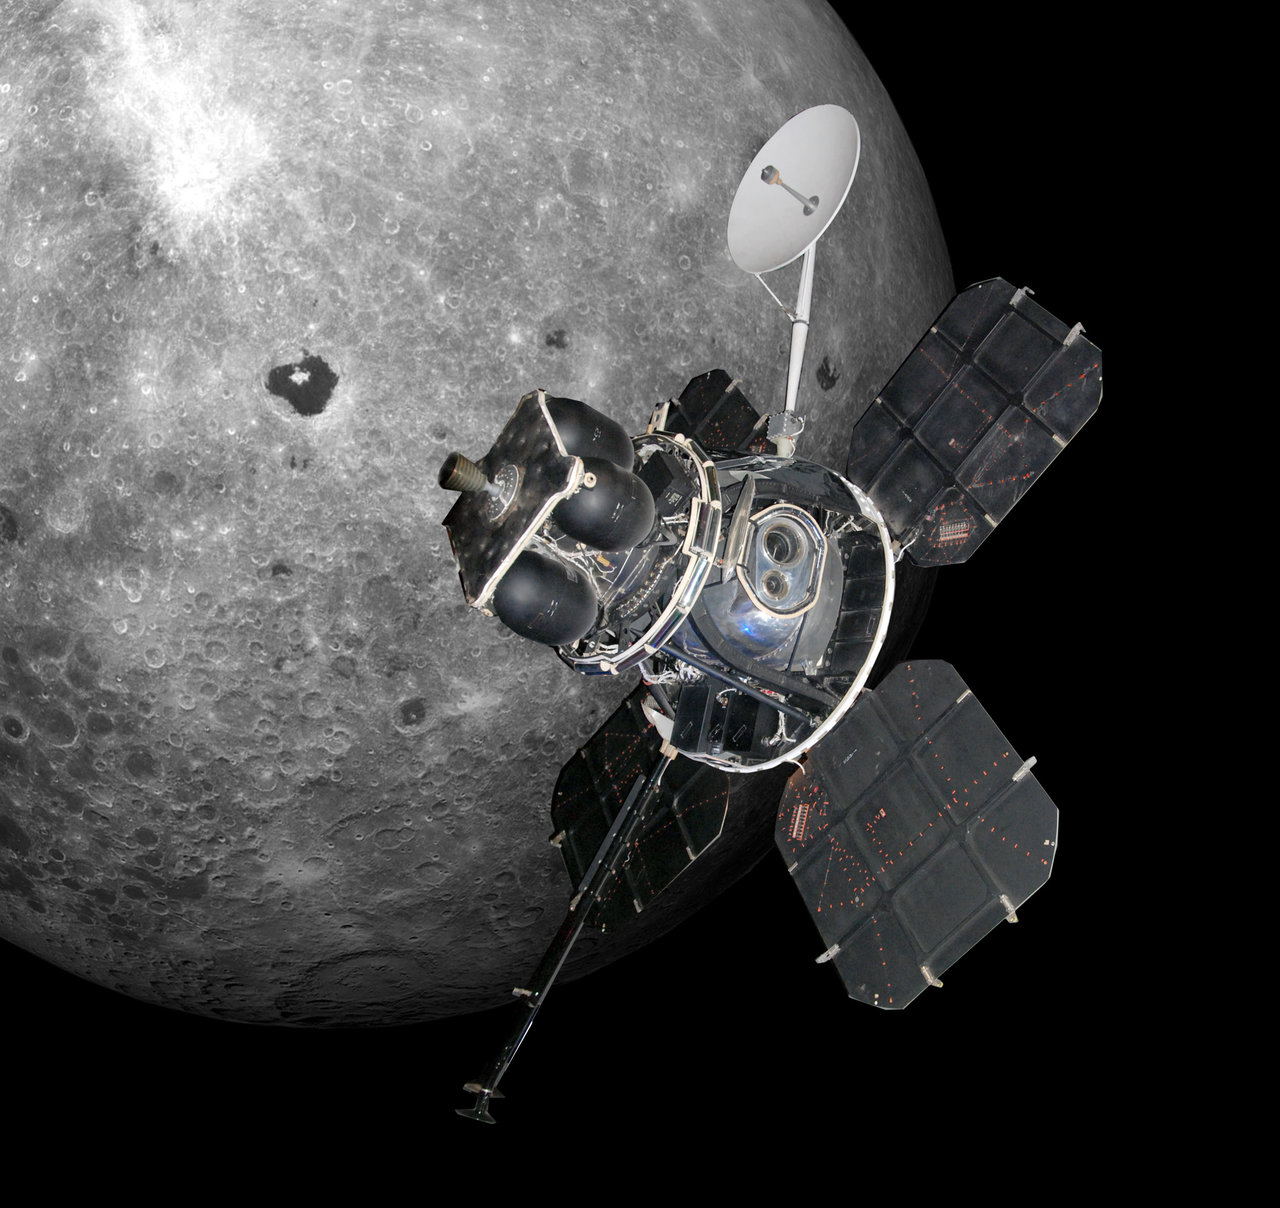 spacecraft in lunar orbit - photo #15